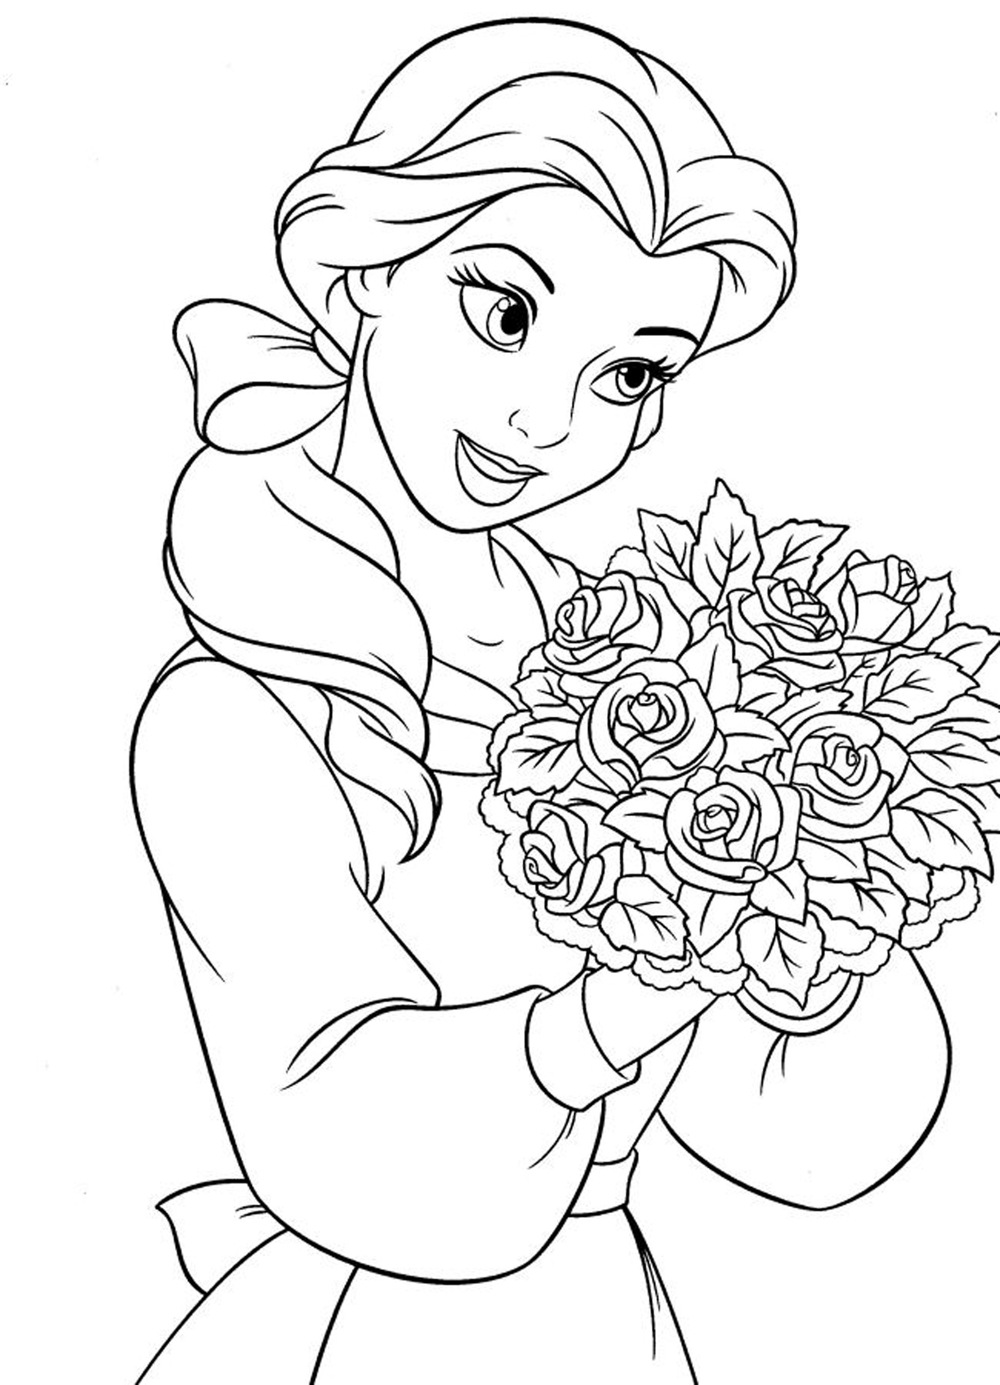 Disney Princess Tiana Coloring Page | Disney | Pinterest | free online coloring pages disney princesses